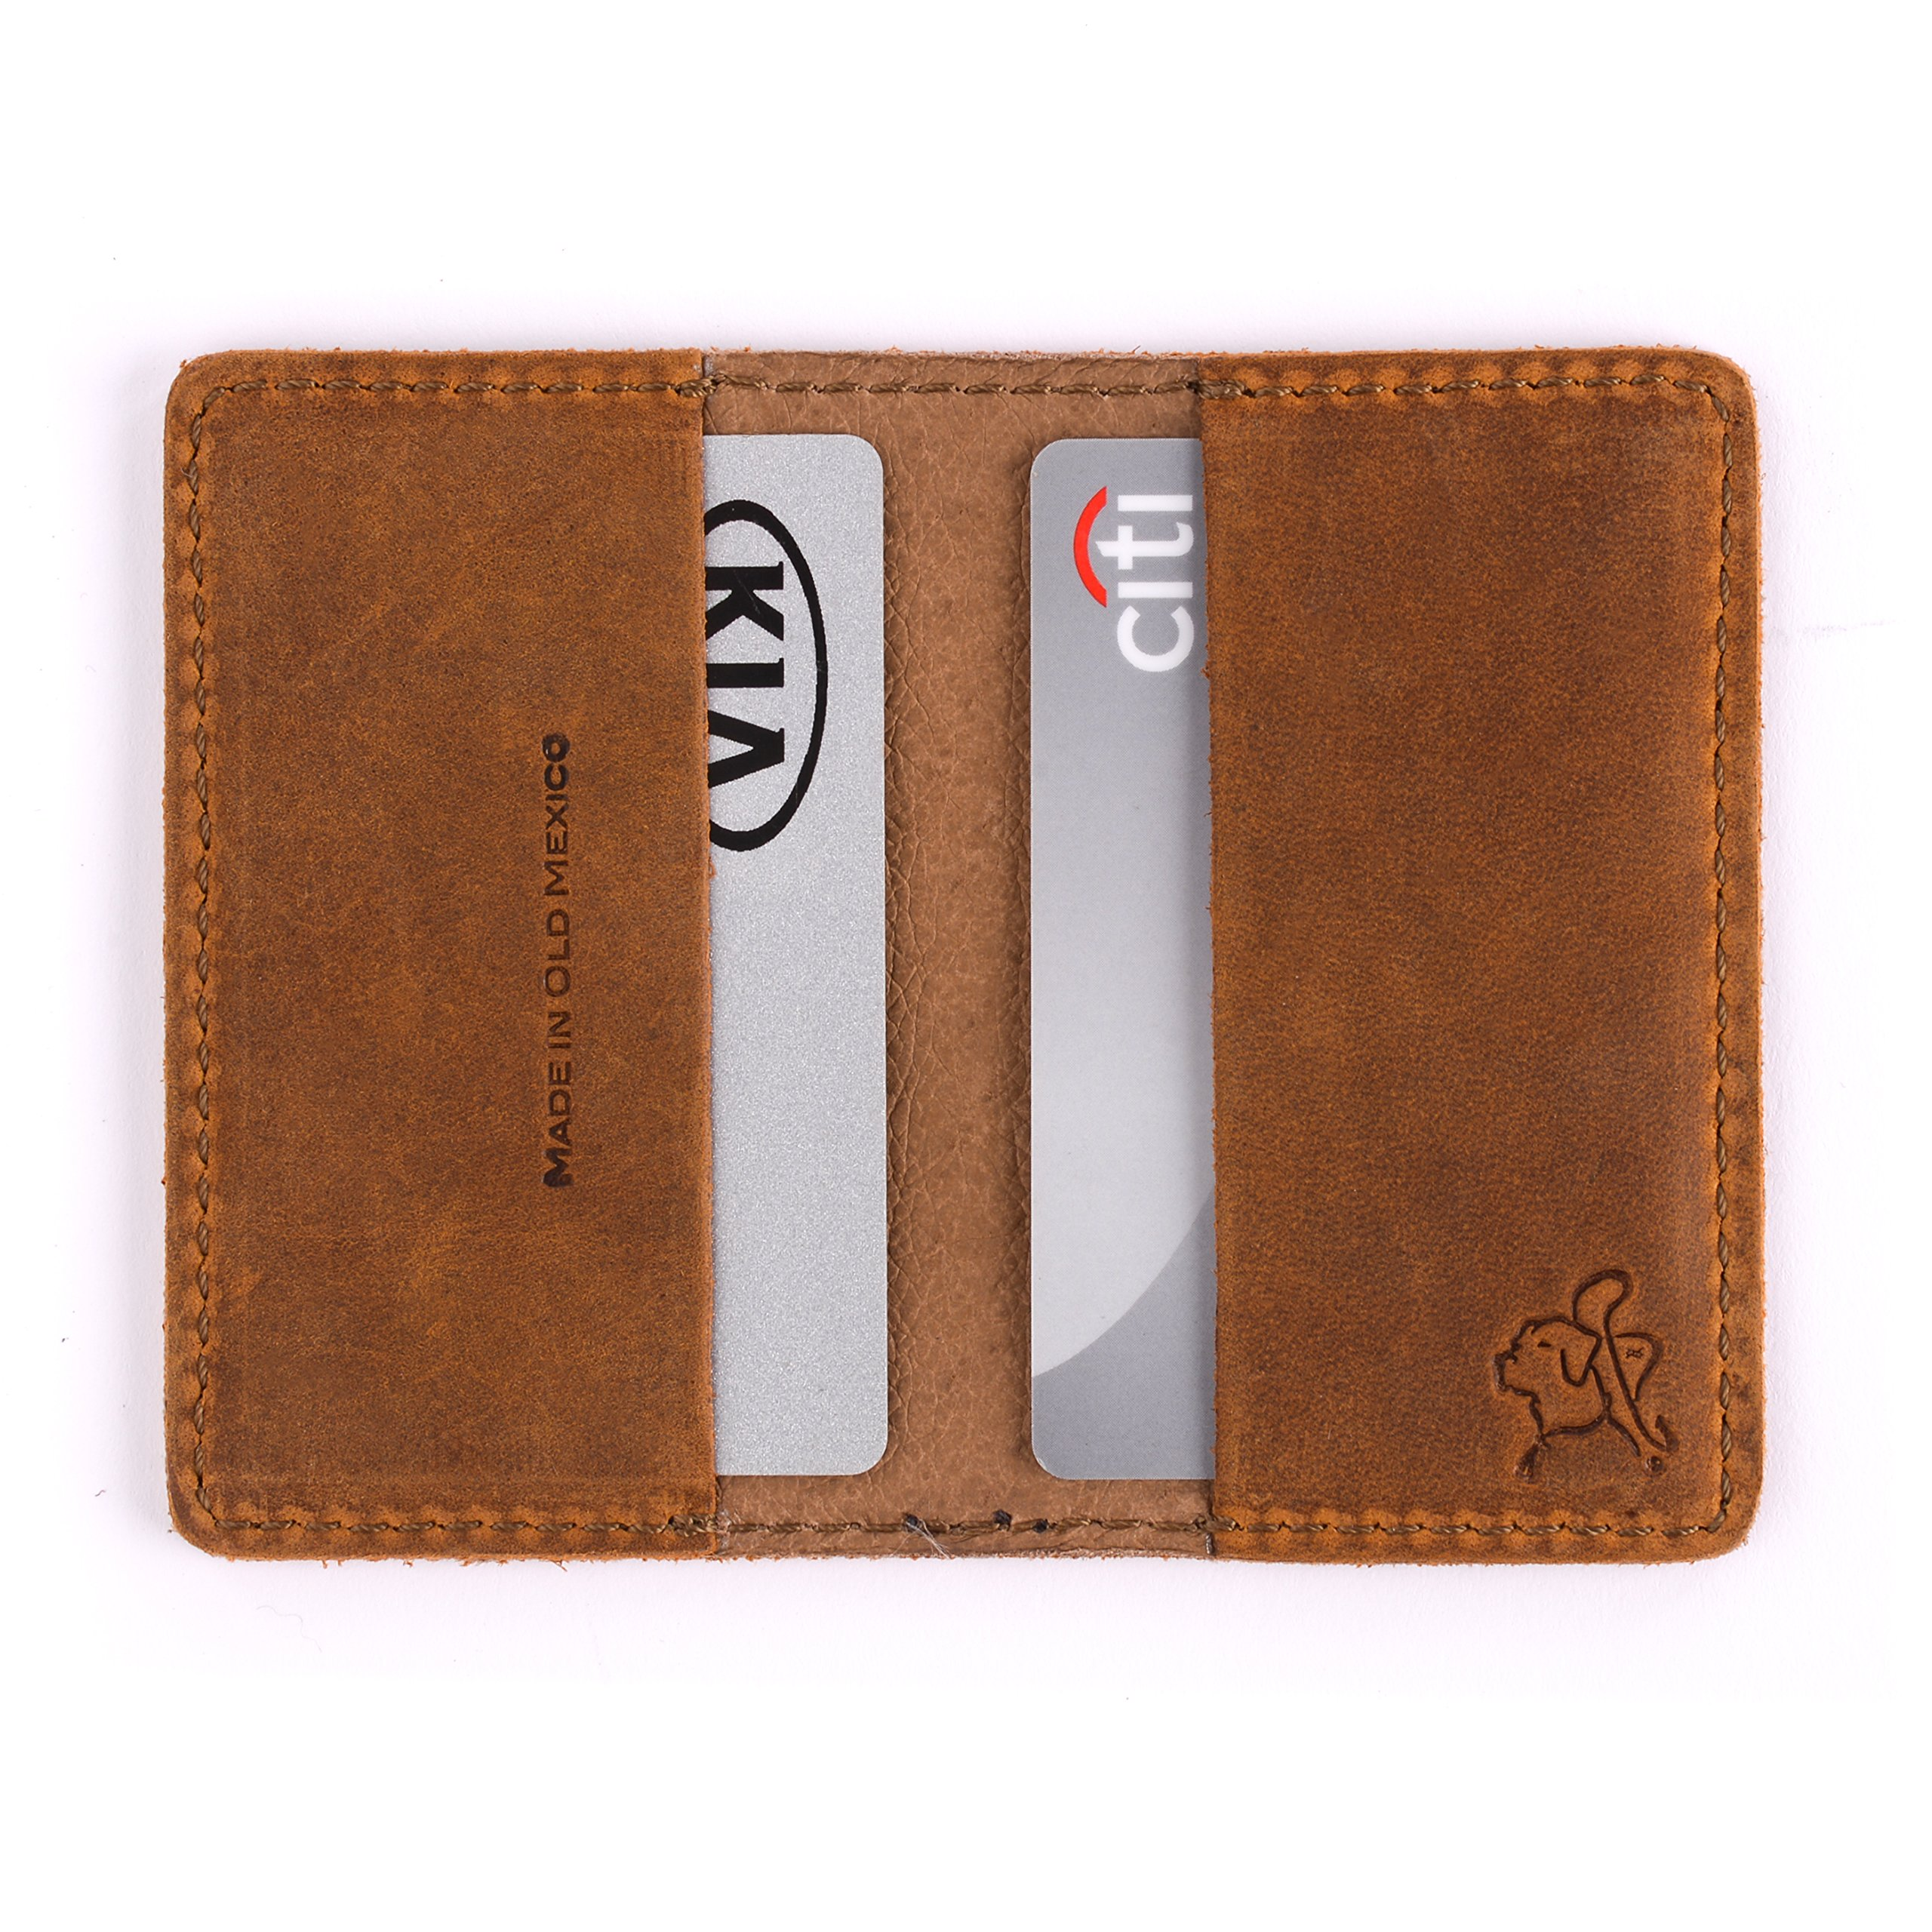 Saddleback Leather Co. Slim Multi Business Card Holder Full Grain Leather Wallet for Men and Women Includes 100 Year Warranty